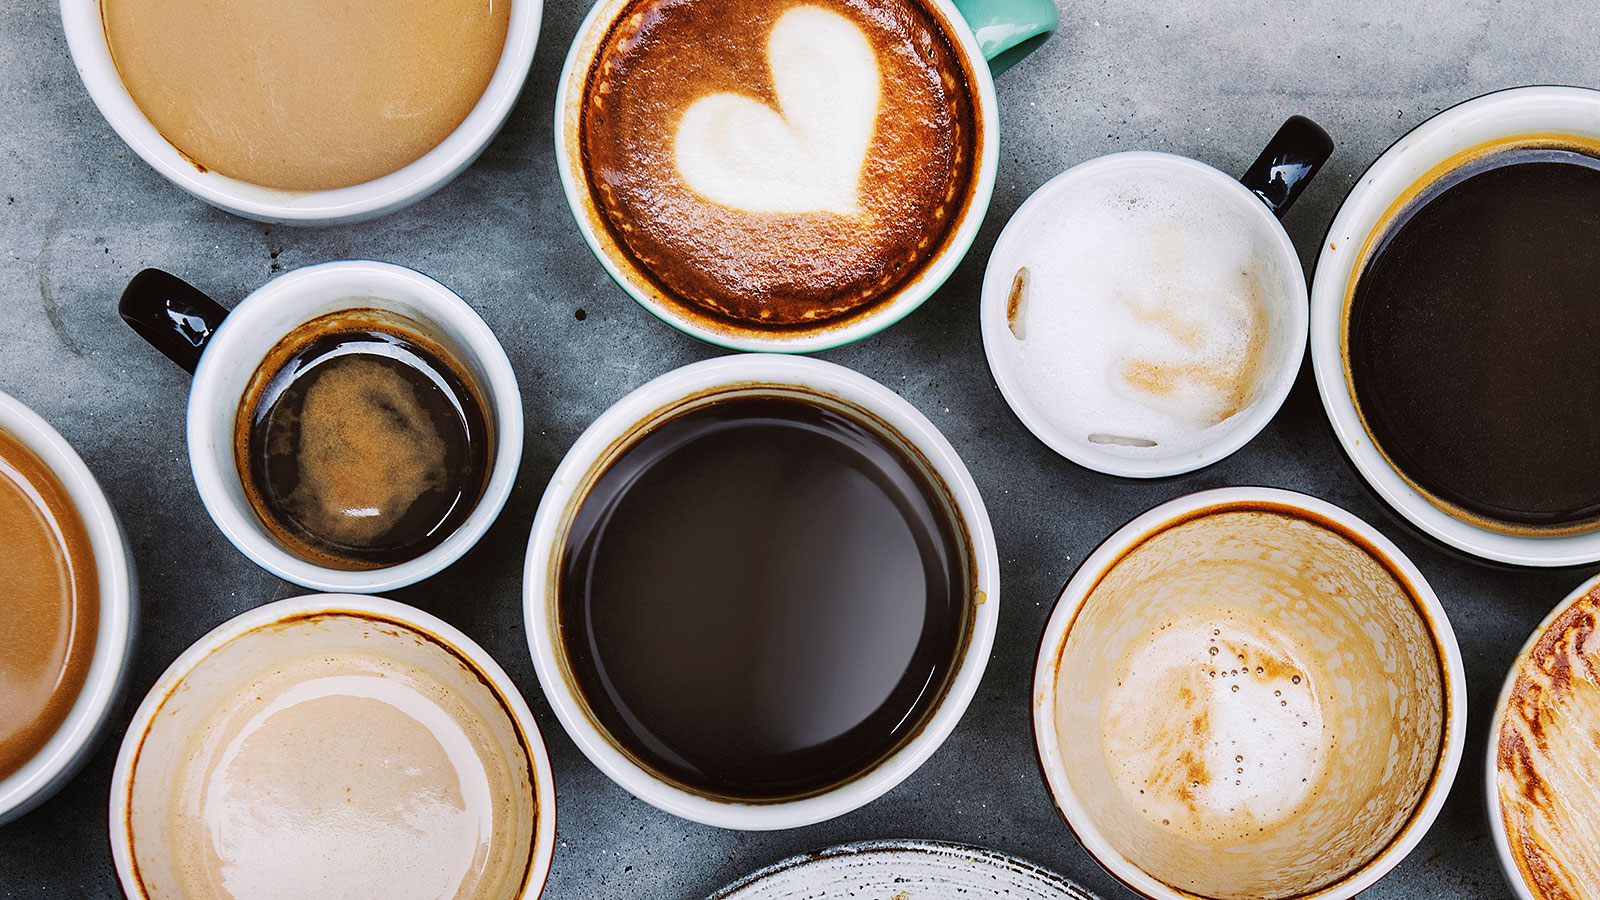 New study says drinking 25 cups of coffee per day no worse than drinking 1